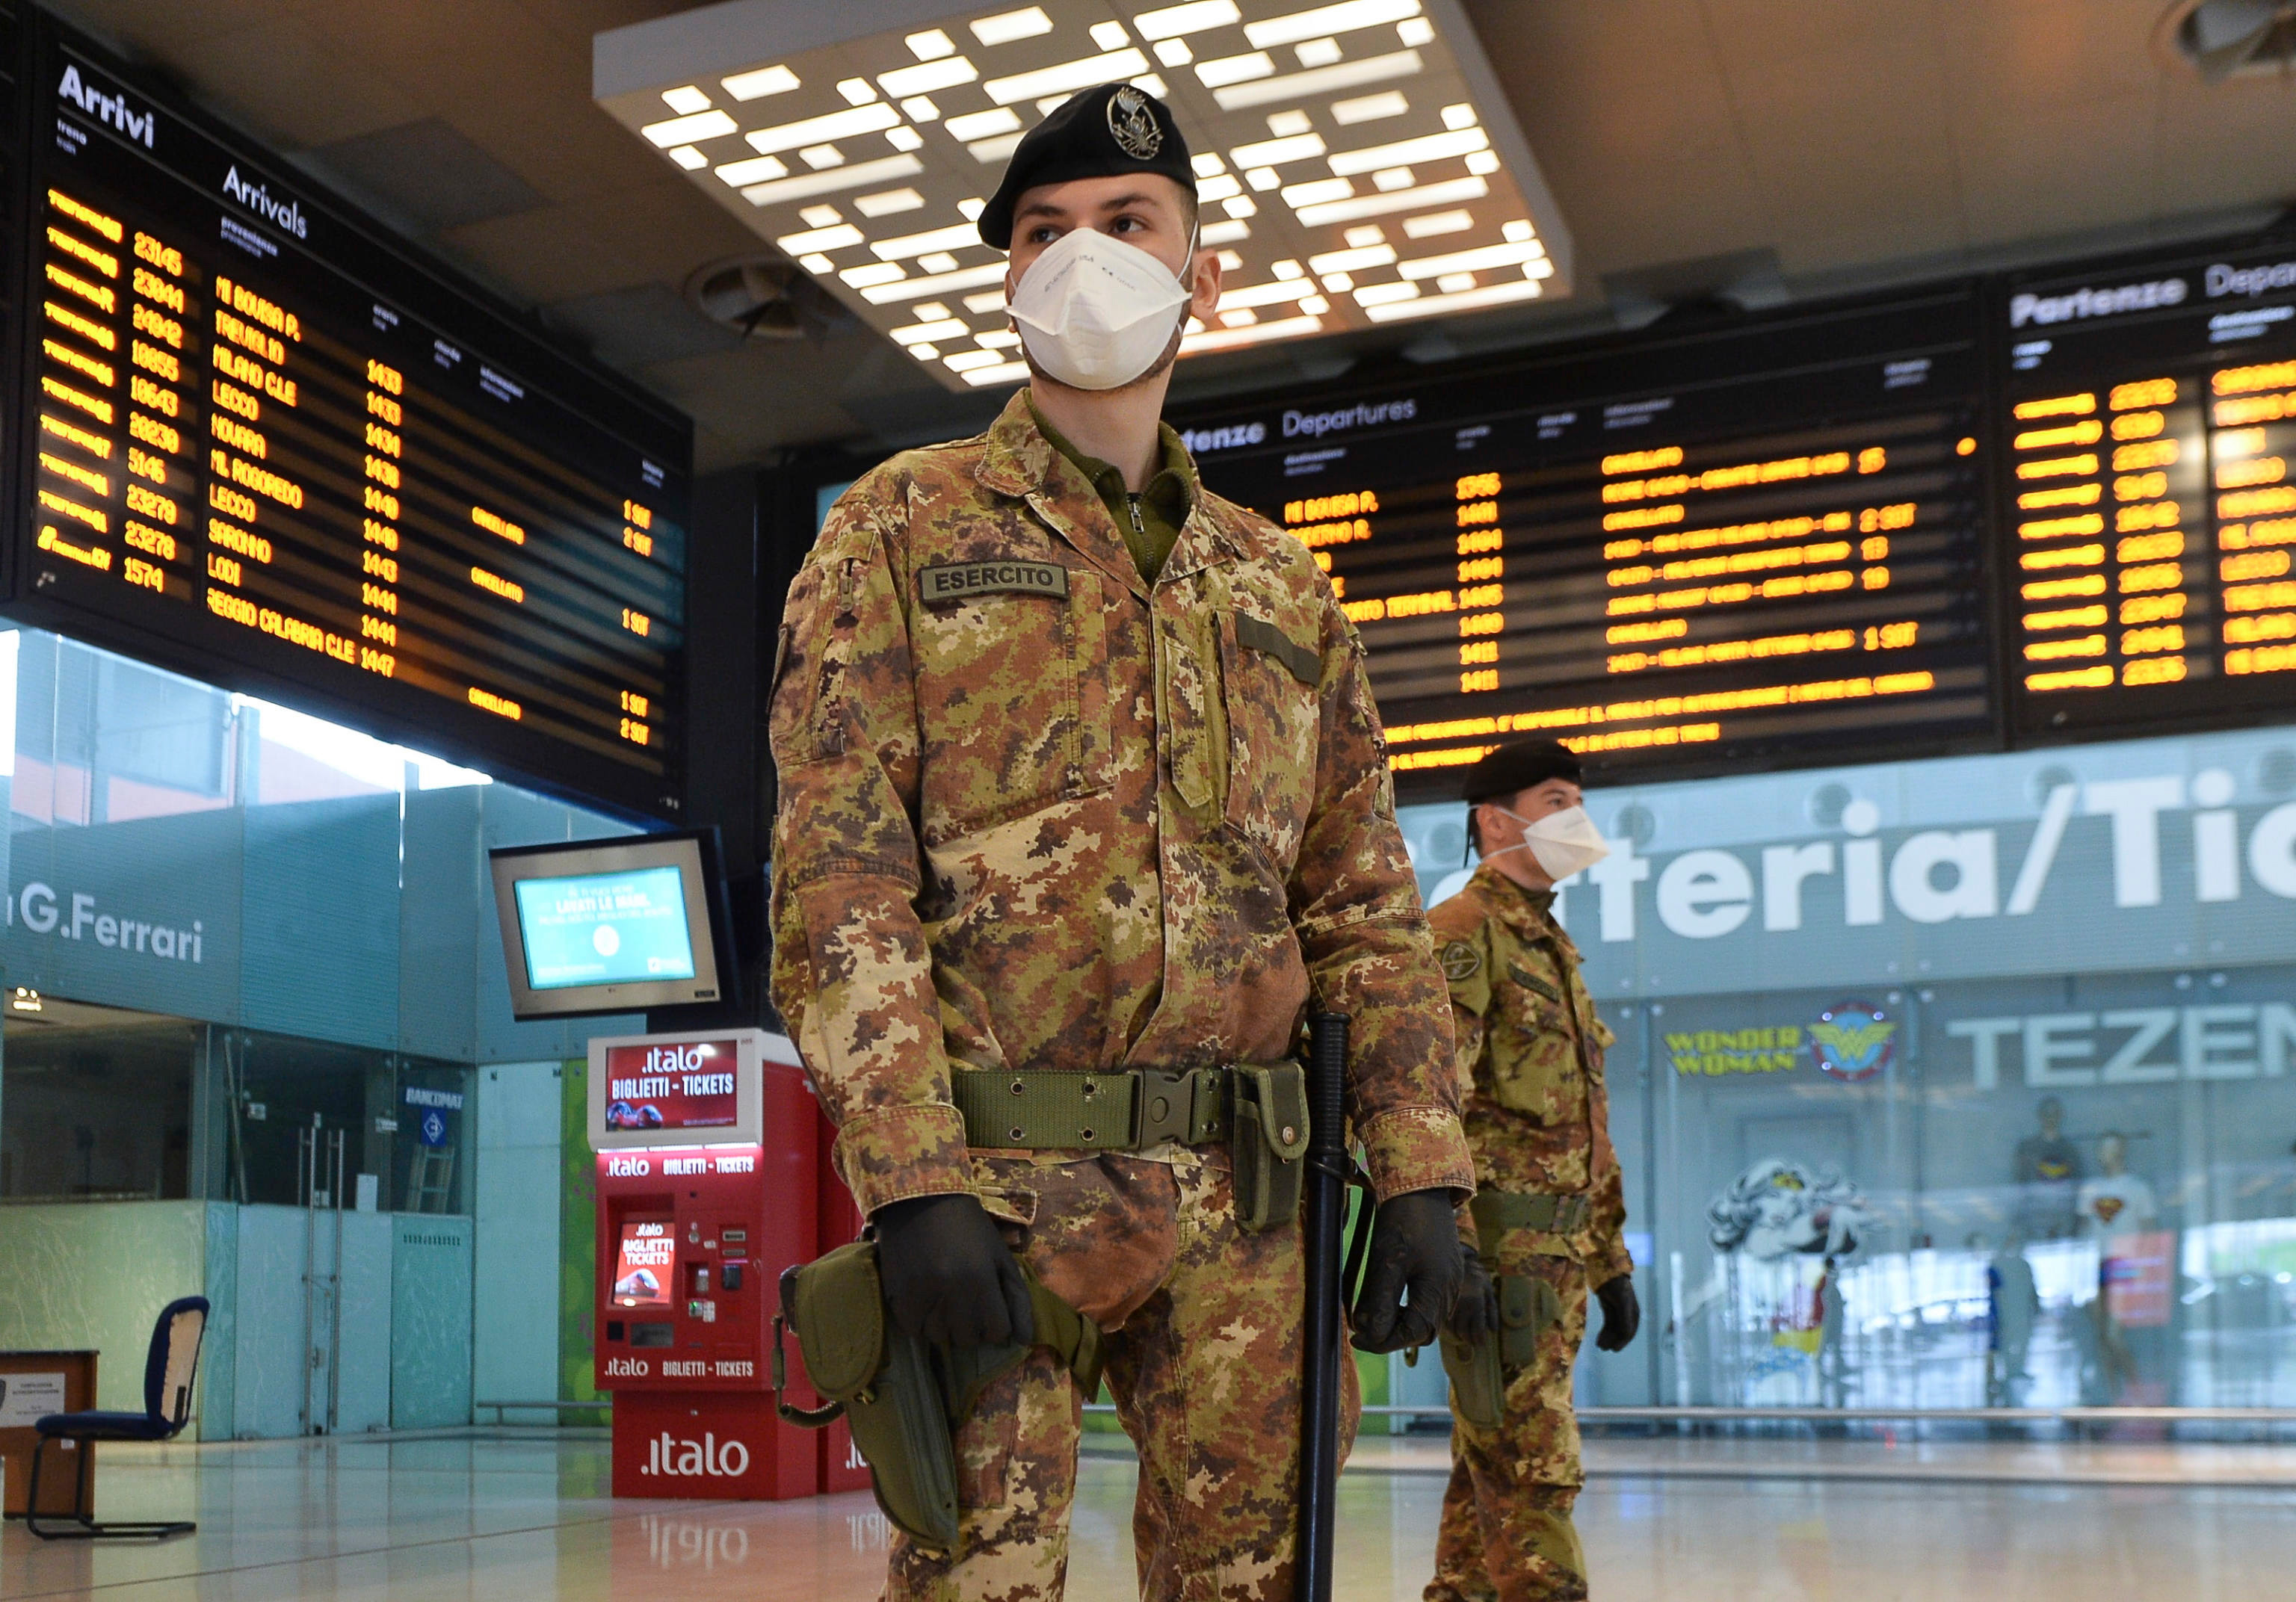 Soldiers are seen guarding a train terminal